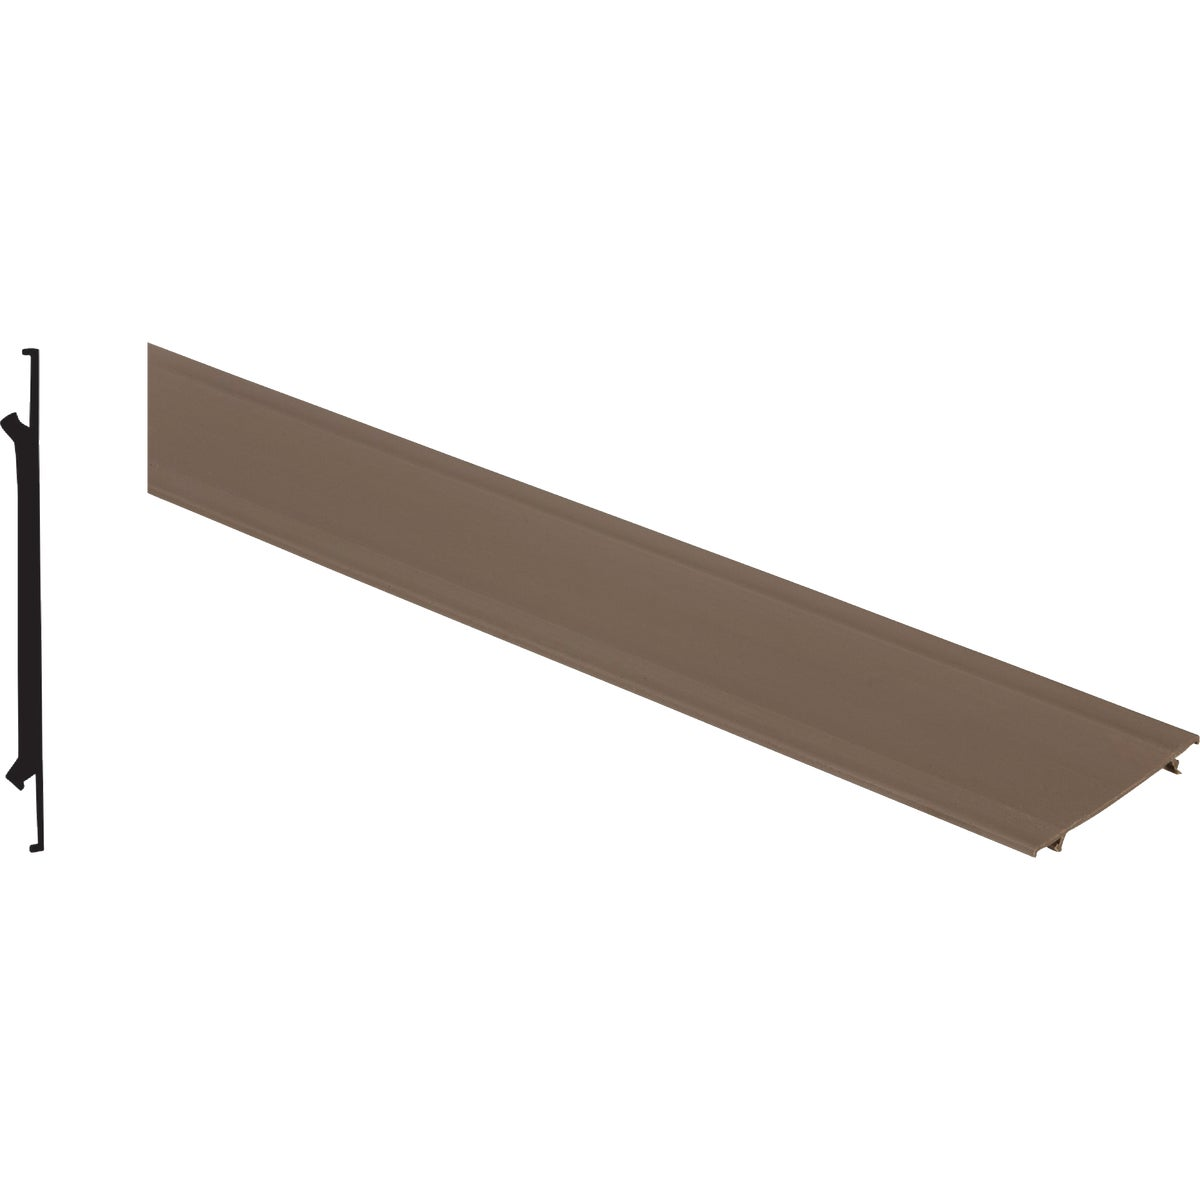 "3-1/2""X8' BROWN CAP - BRCAP38 by Screen Tight"